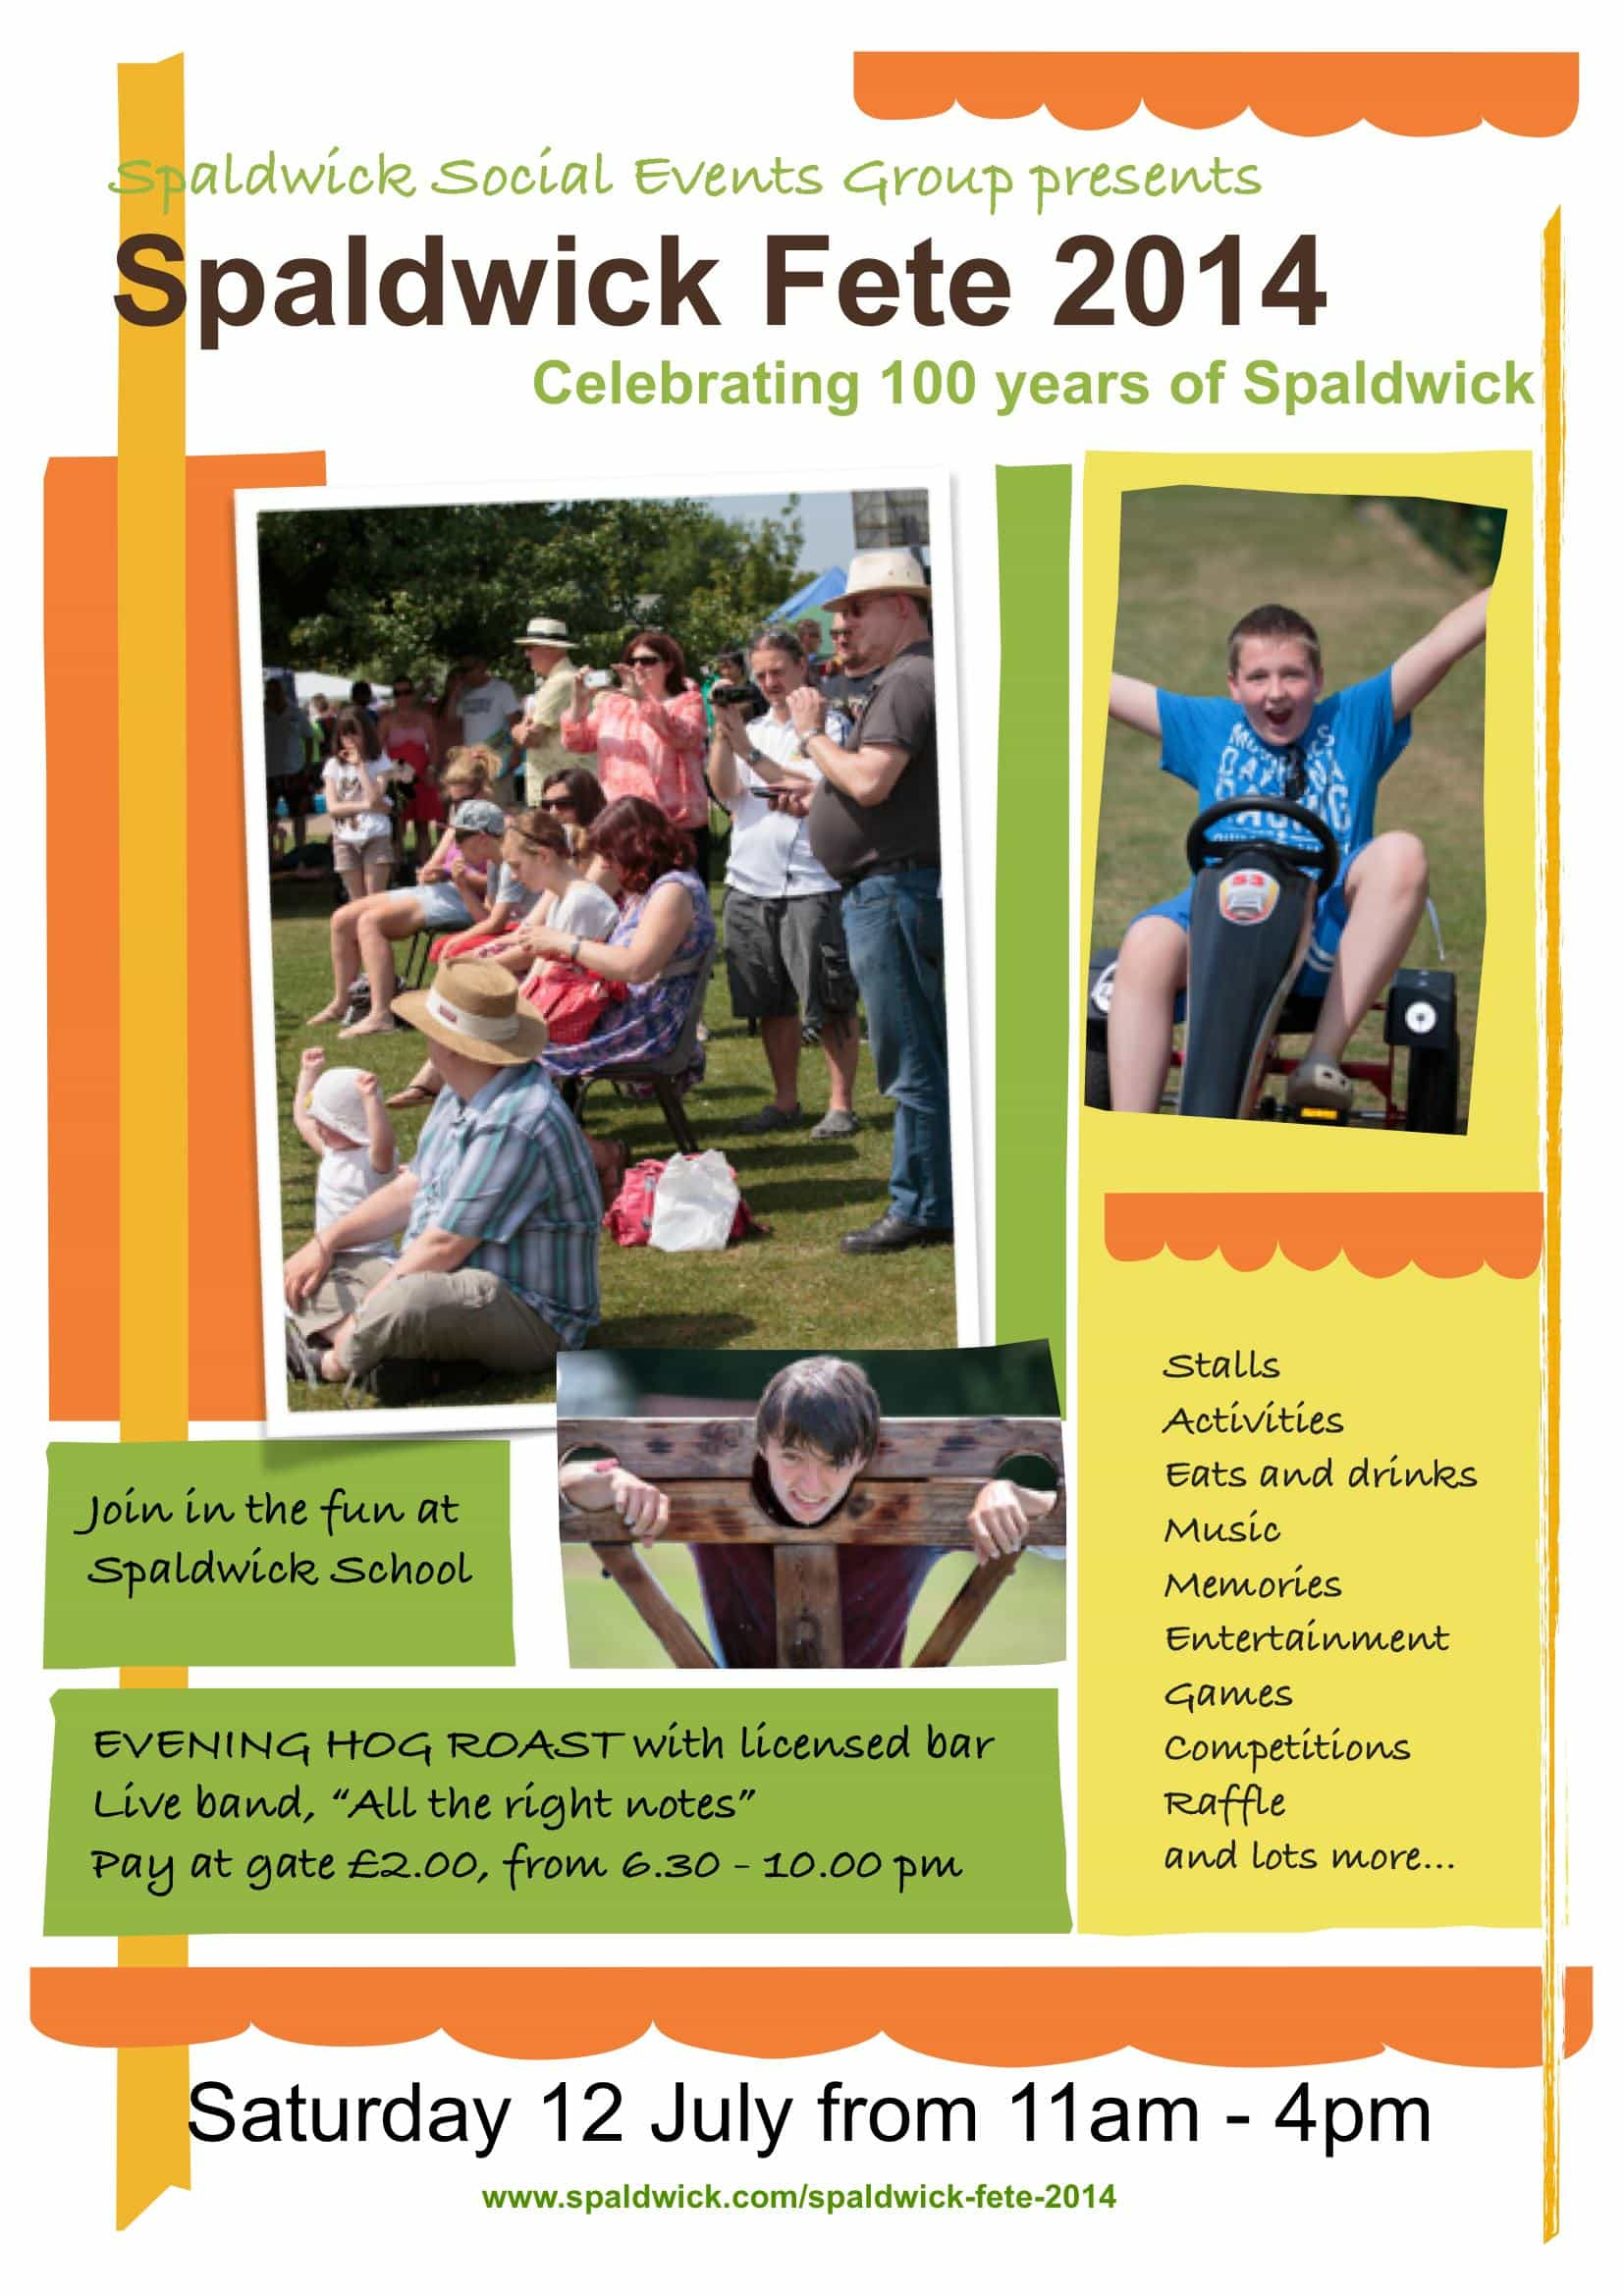 Poster for the 2014 Spaldwick Fete